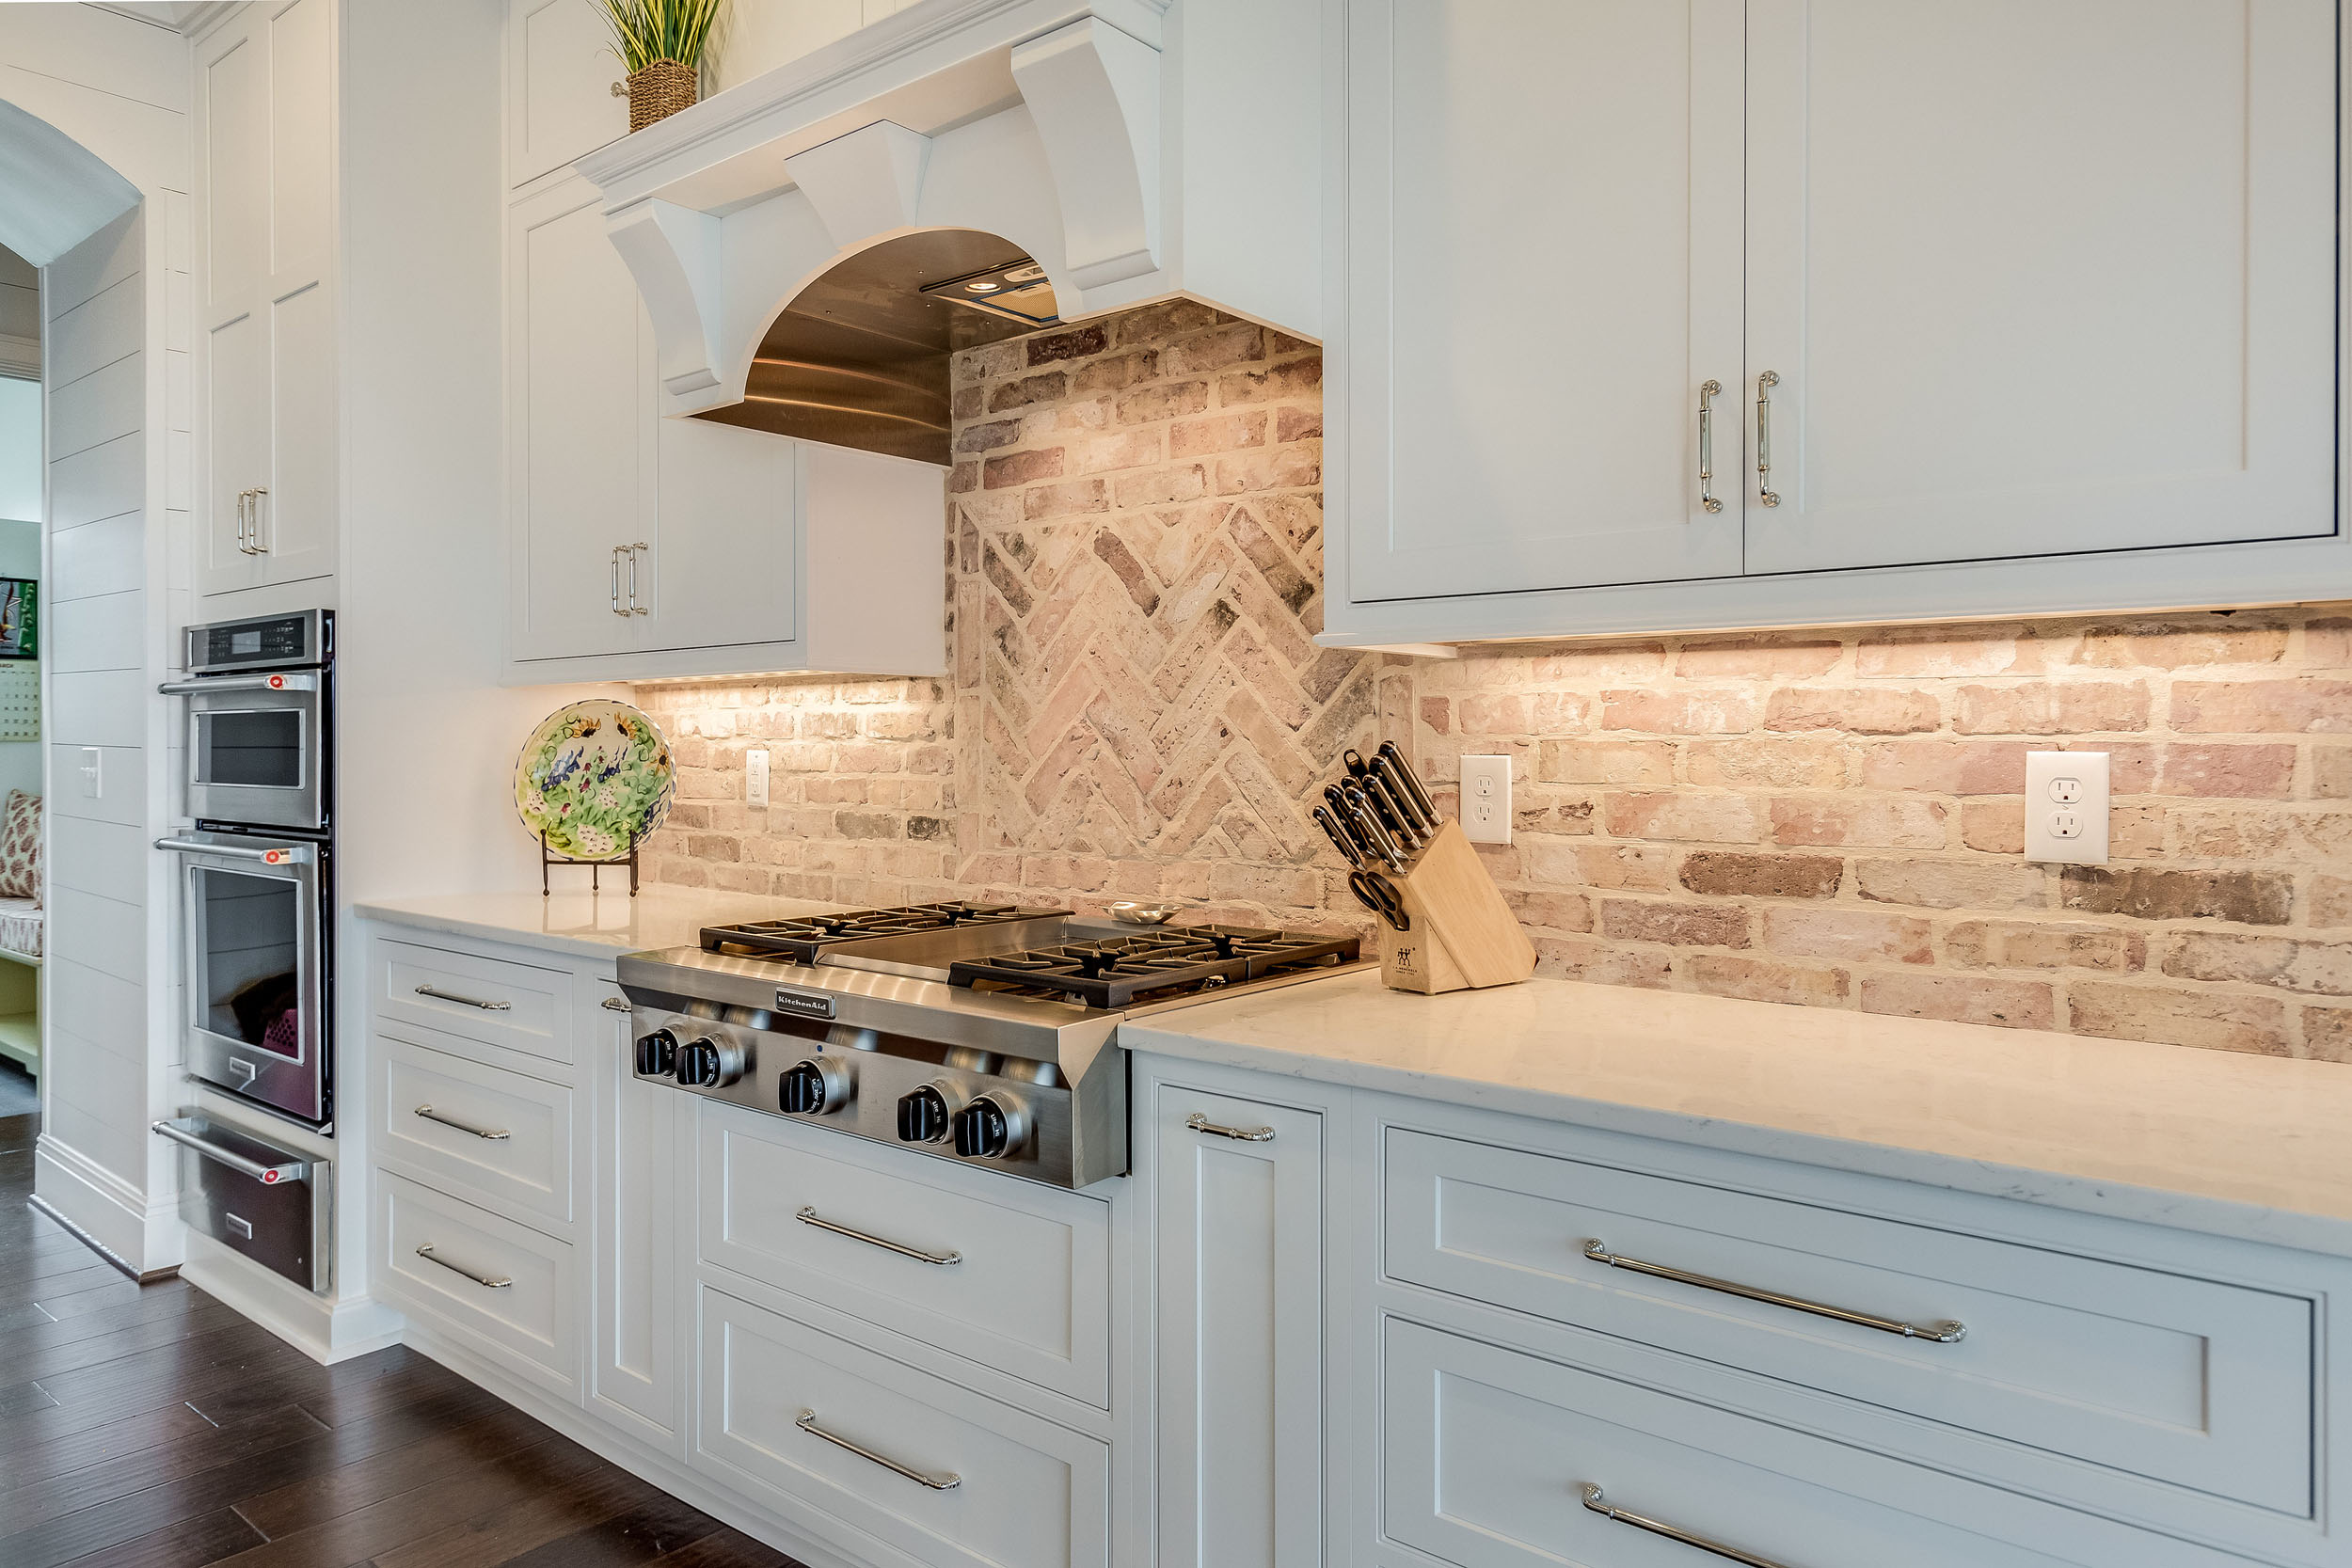 All appliances in this kitchen design are by Kitchenaid